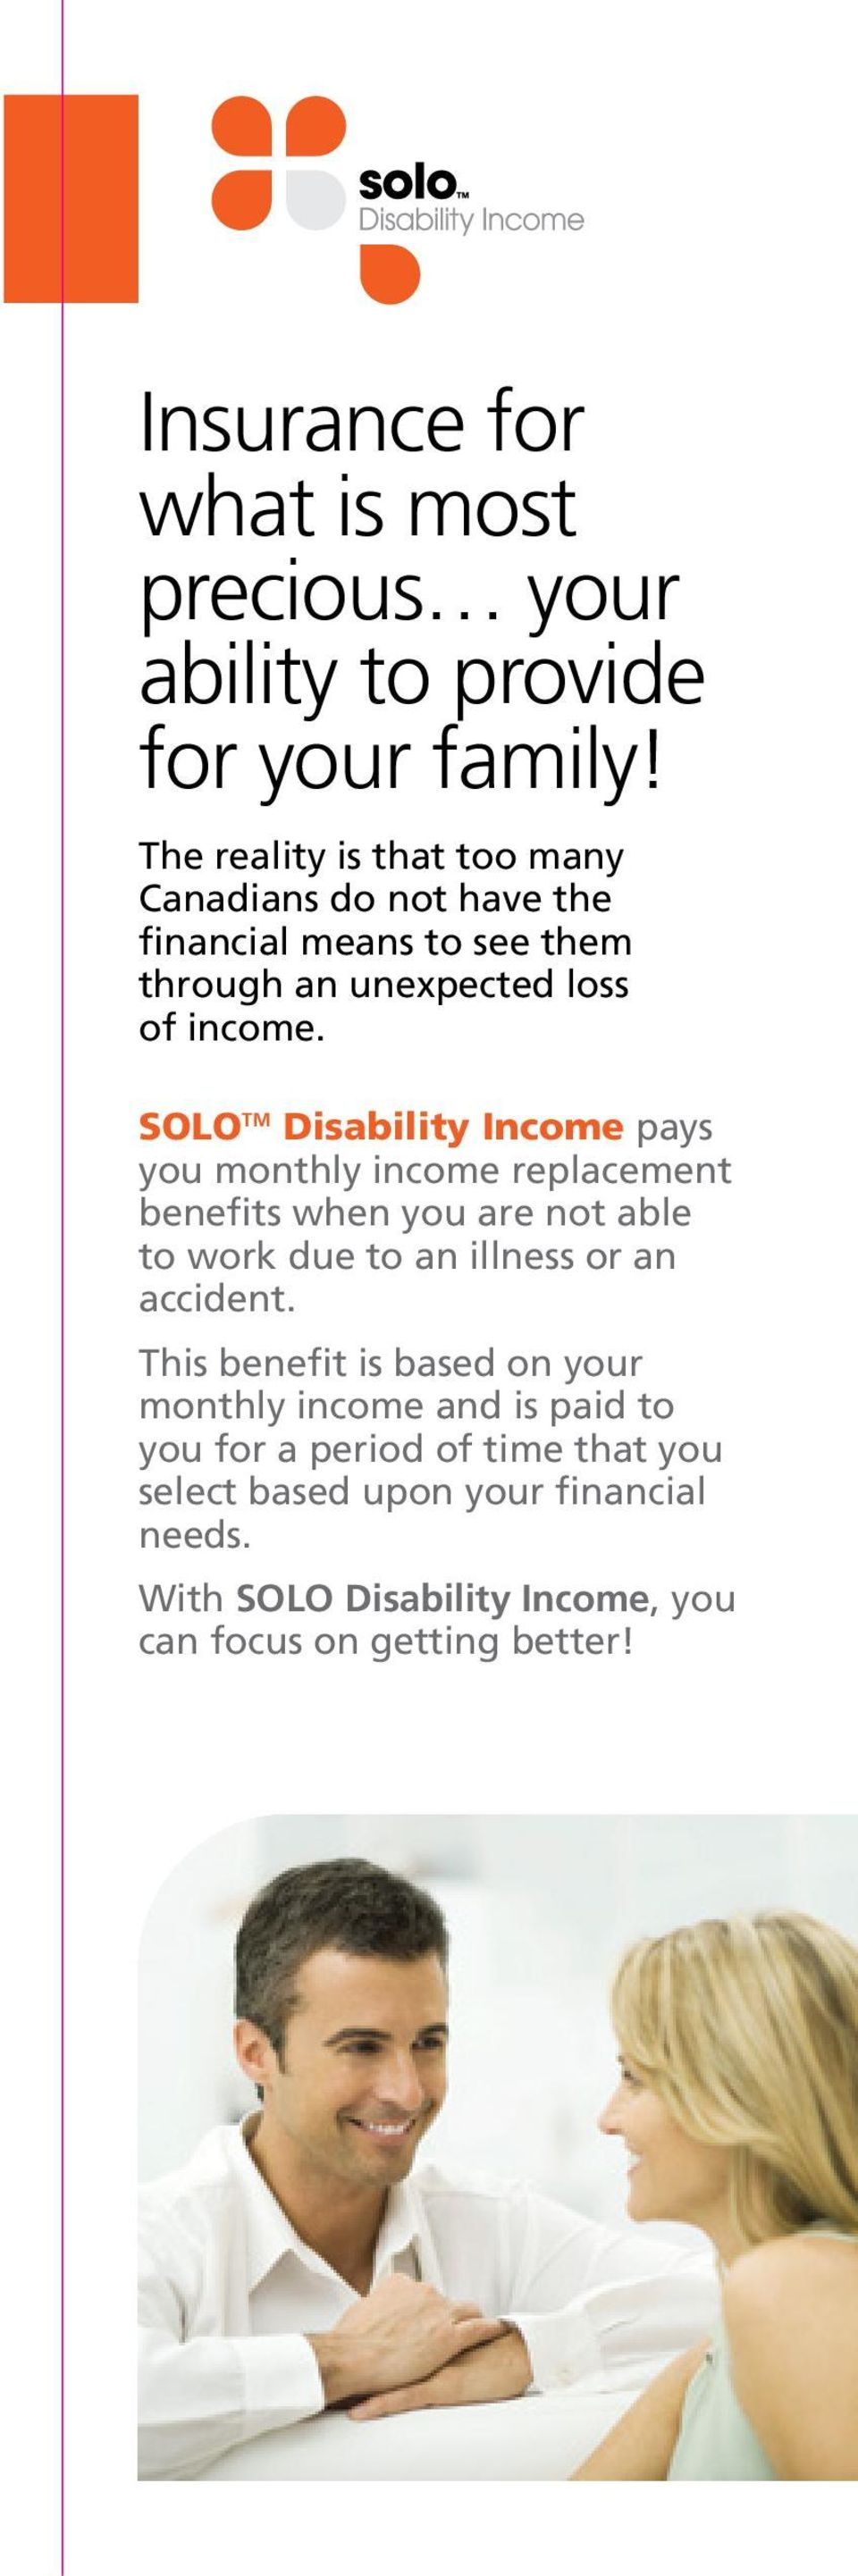 SOLO TM Disability Income pays you monthly income replacement benefits when you are not able to work due to an illness or an